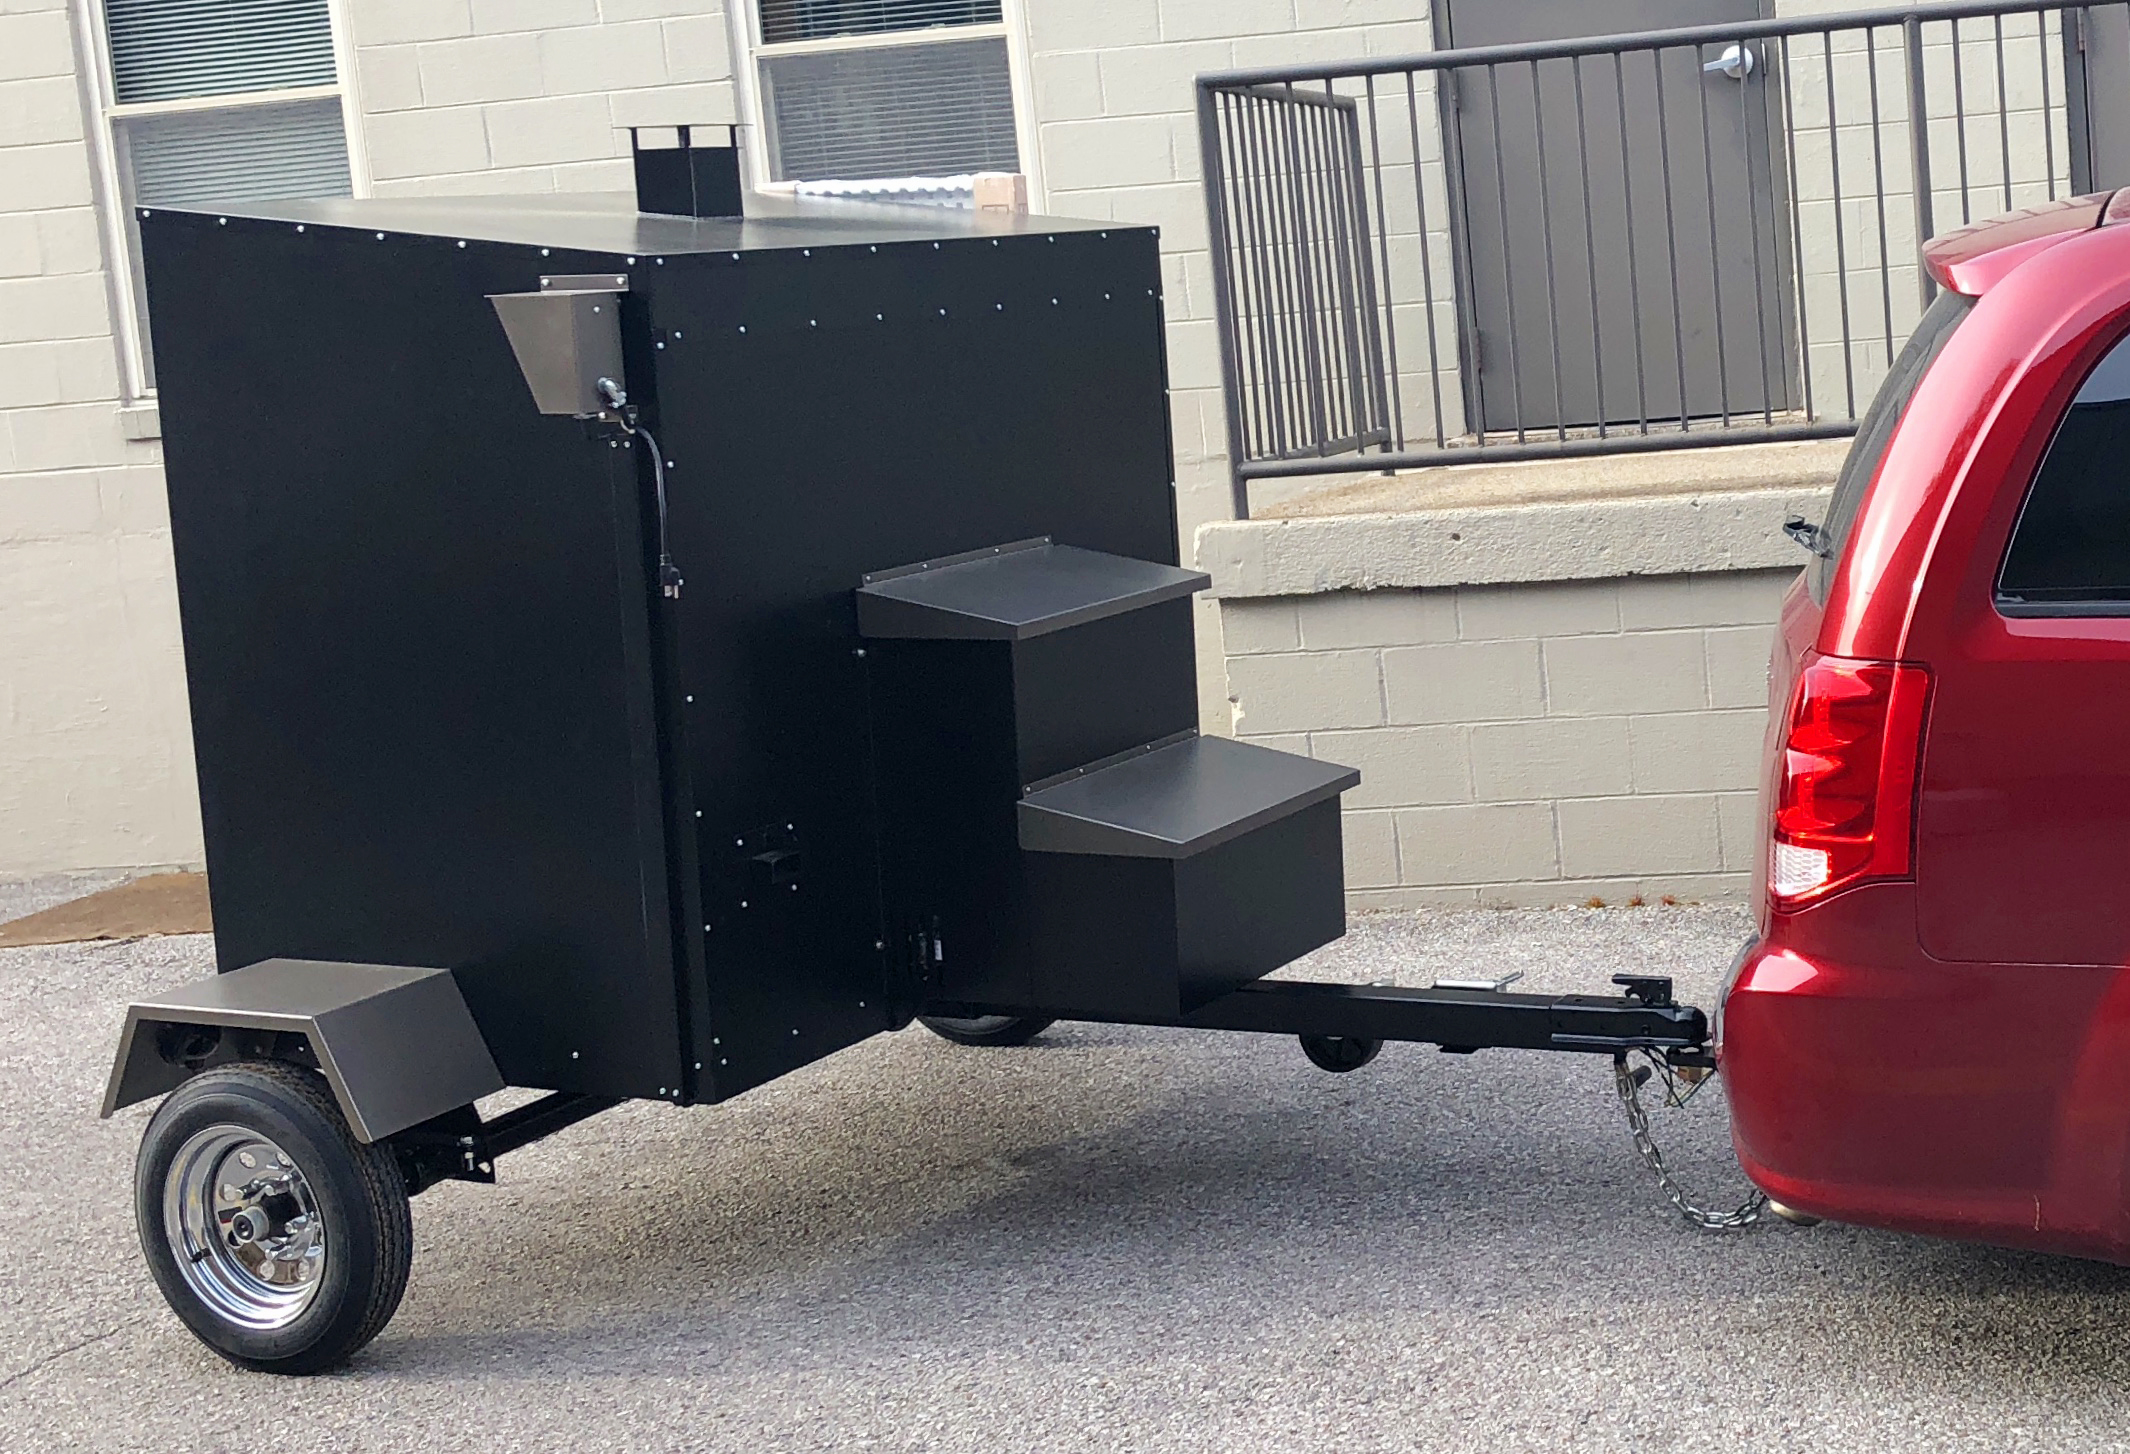 Our New Traeger Commercial Smoker!